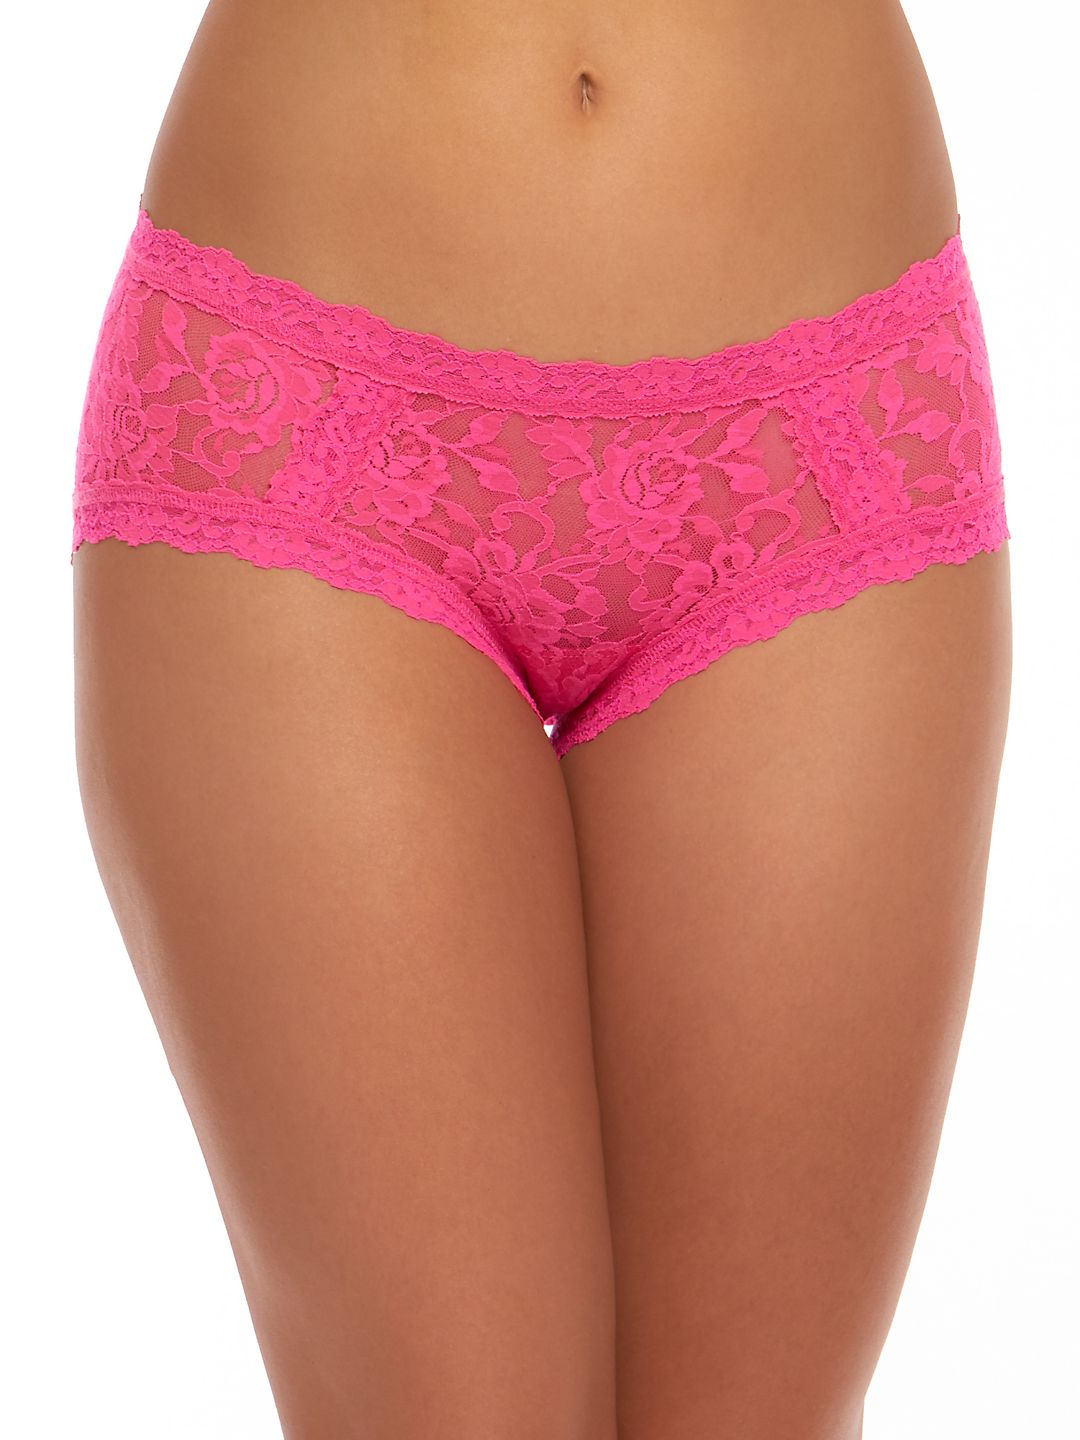 Low-Rise Signature Lace Girl Bikini Panty